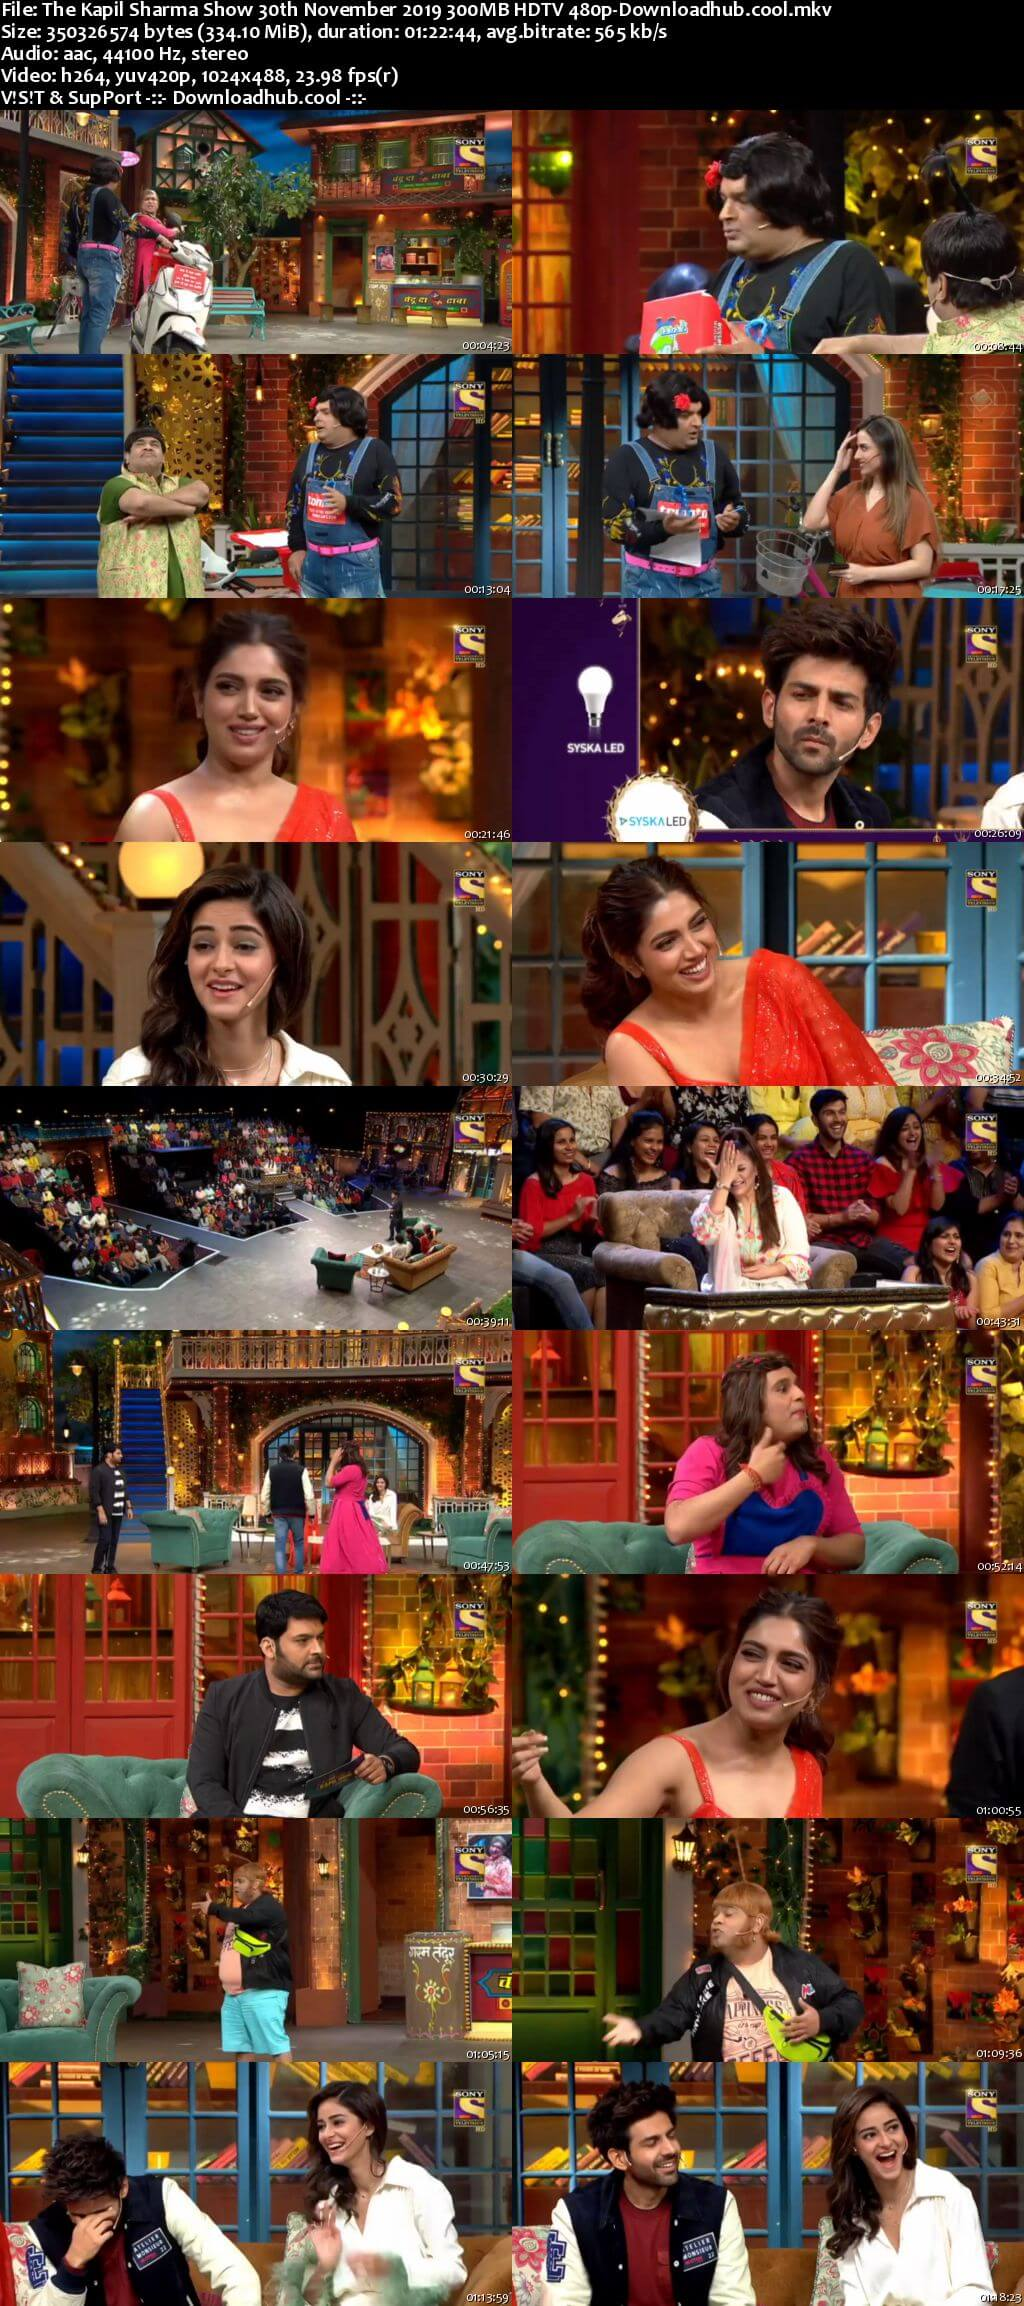 The Kapil Sharma Show 30 November 2019 Episode 95 HDTV 480p